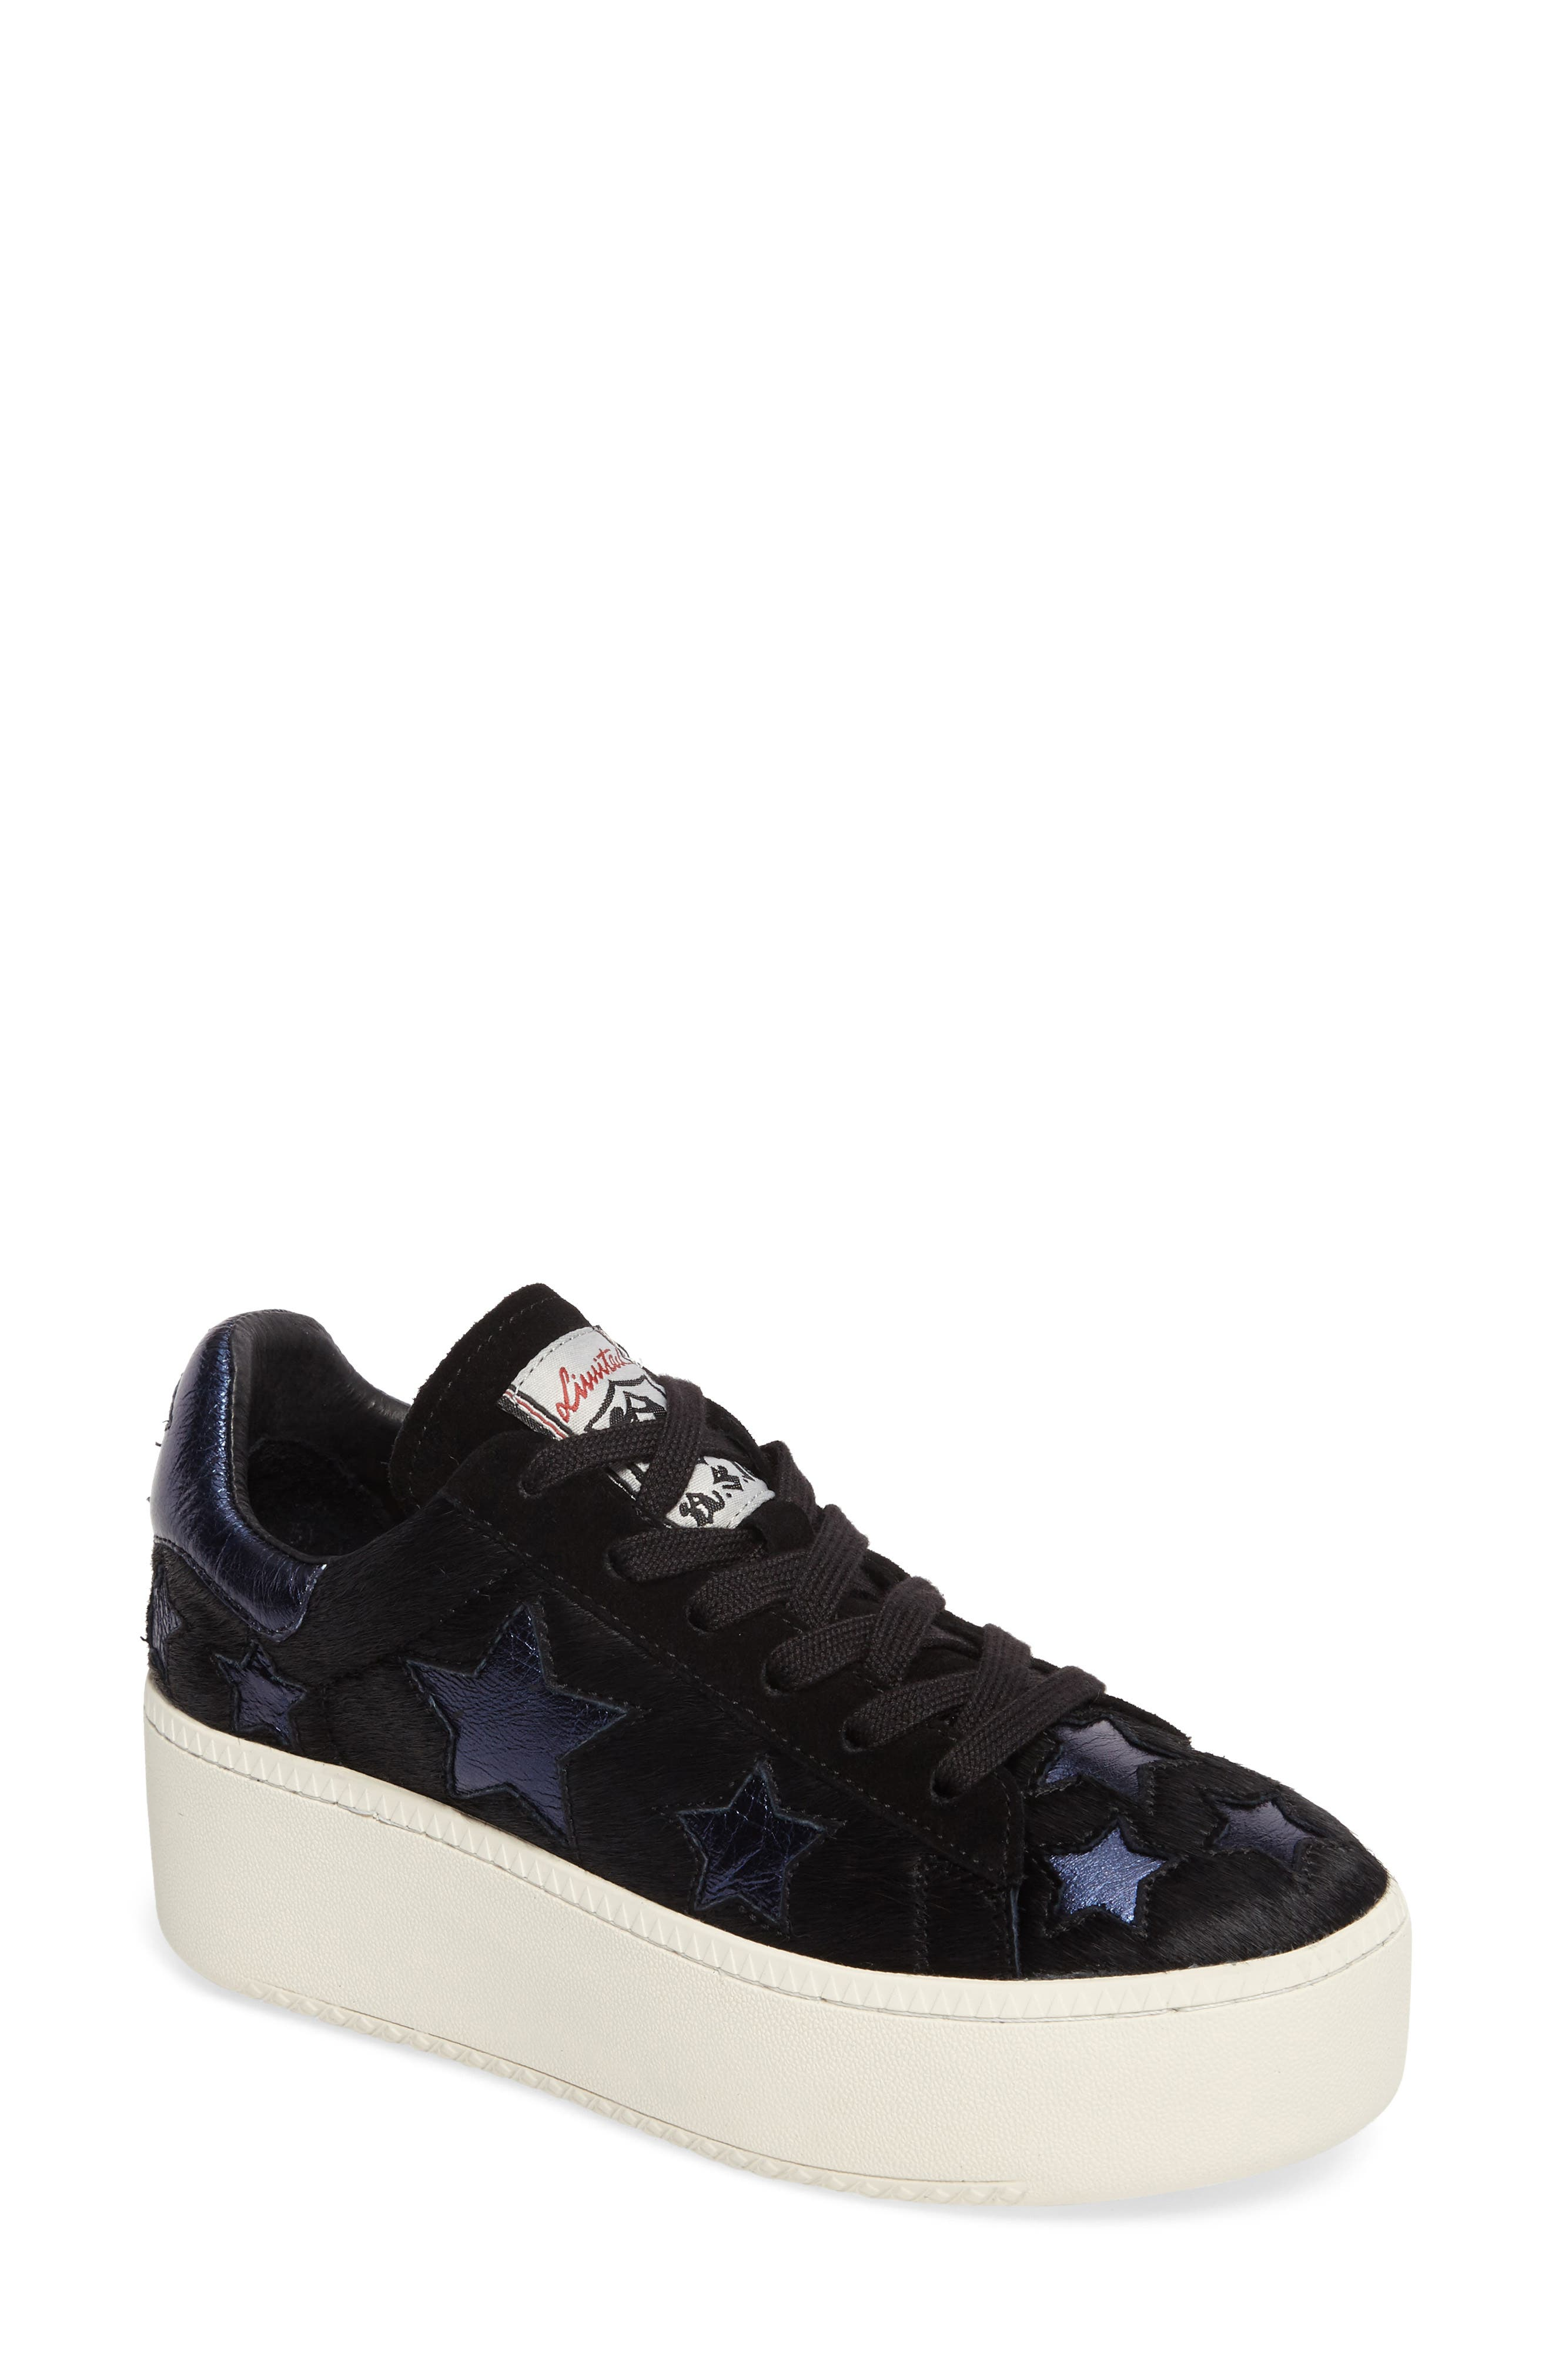 Cult Star Calf Hair Sneaker,                         Main,                         color, 001